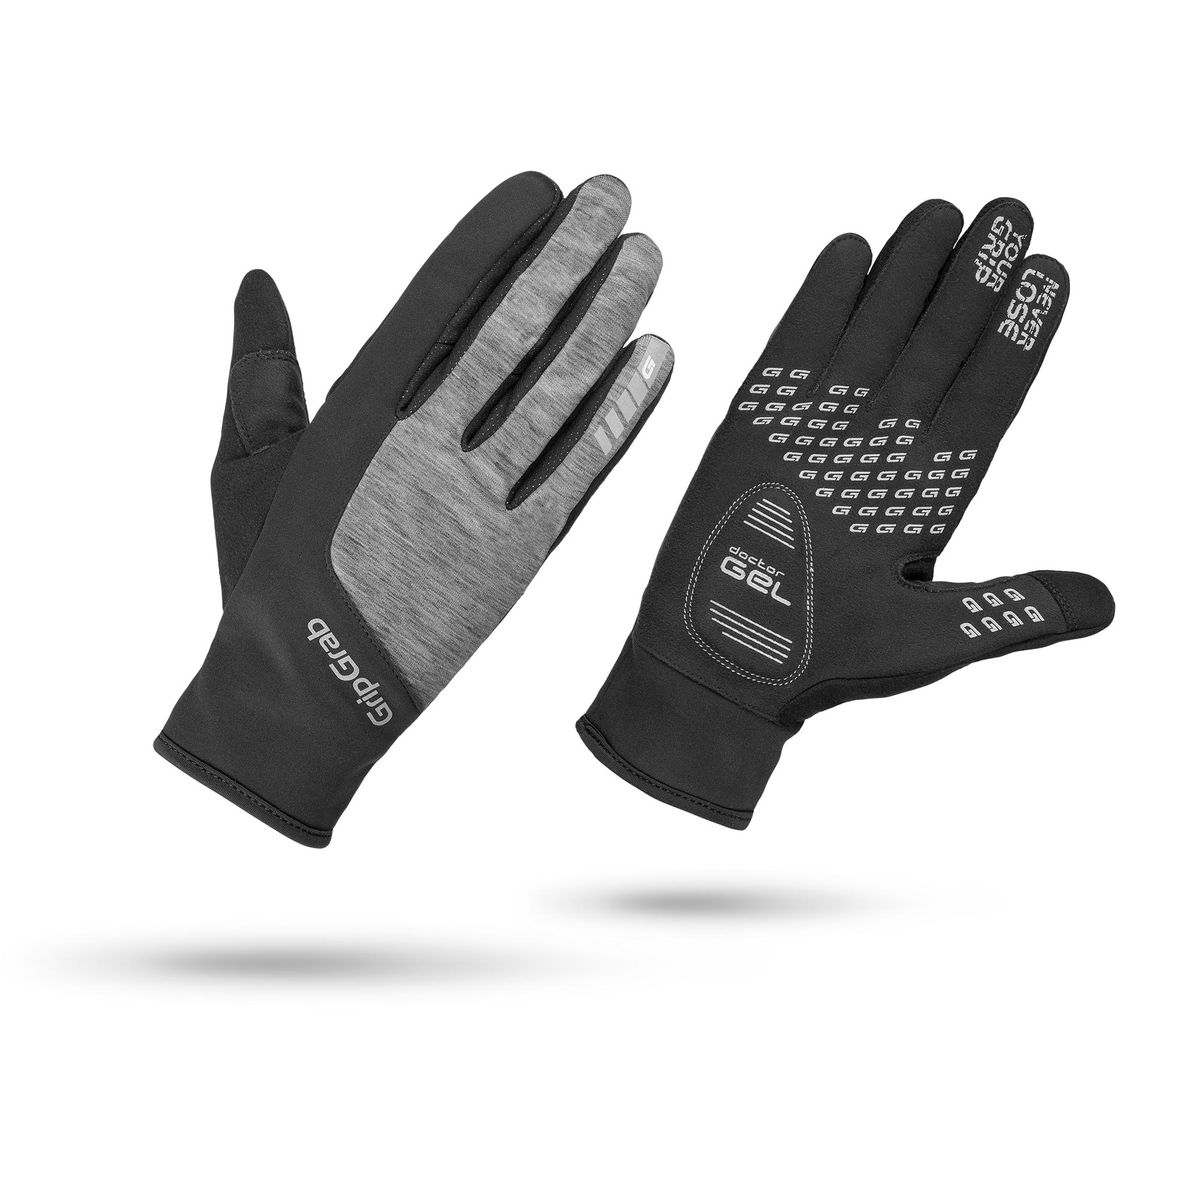 WOMEN'S HURRICANE winter gloves